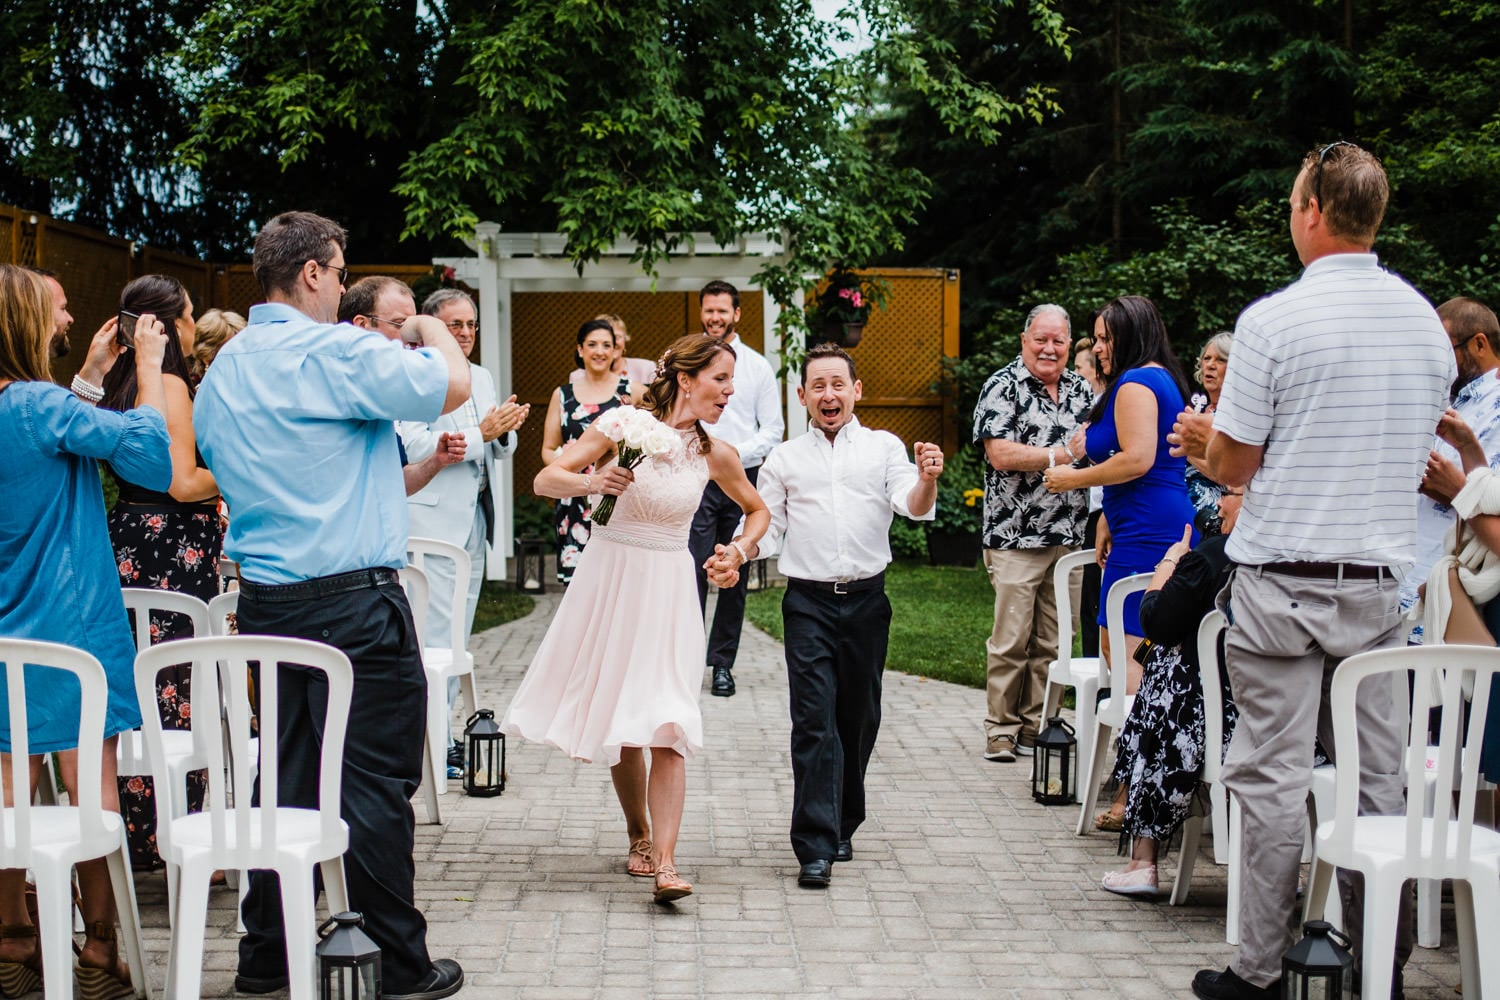 bride and groom excitedly walk out of ceremony - intimate wedding at the schoolhouse